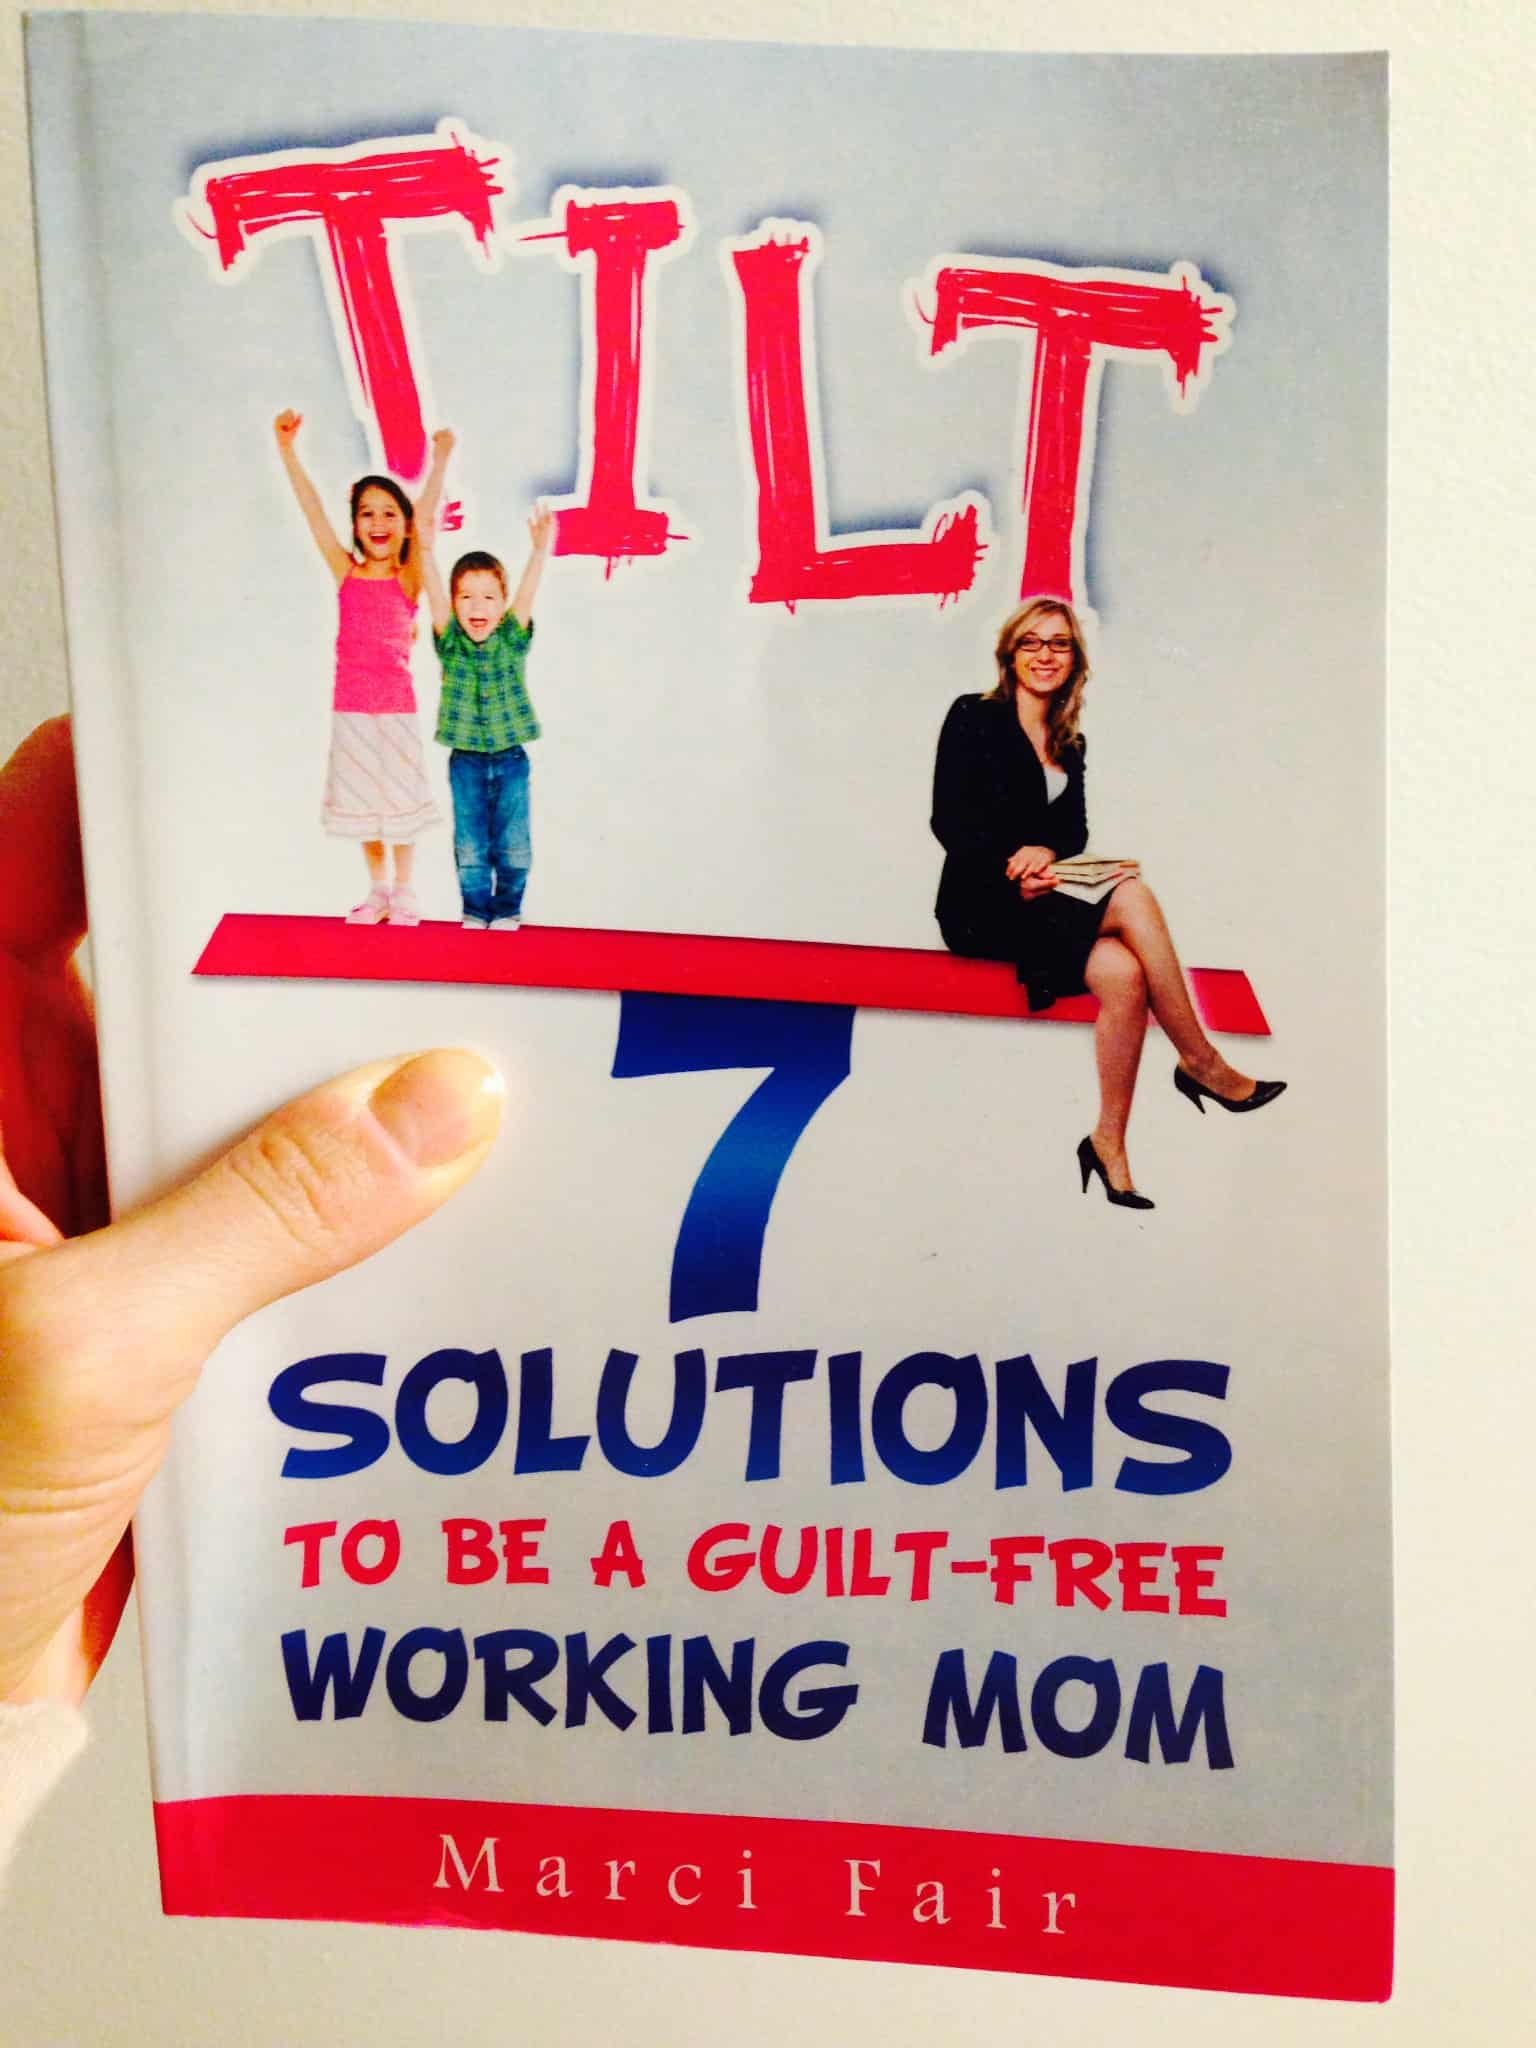 TILT: 7 Solutions to be a Guilt Free Working Mom